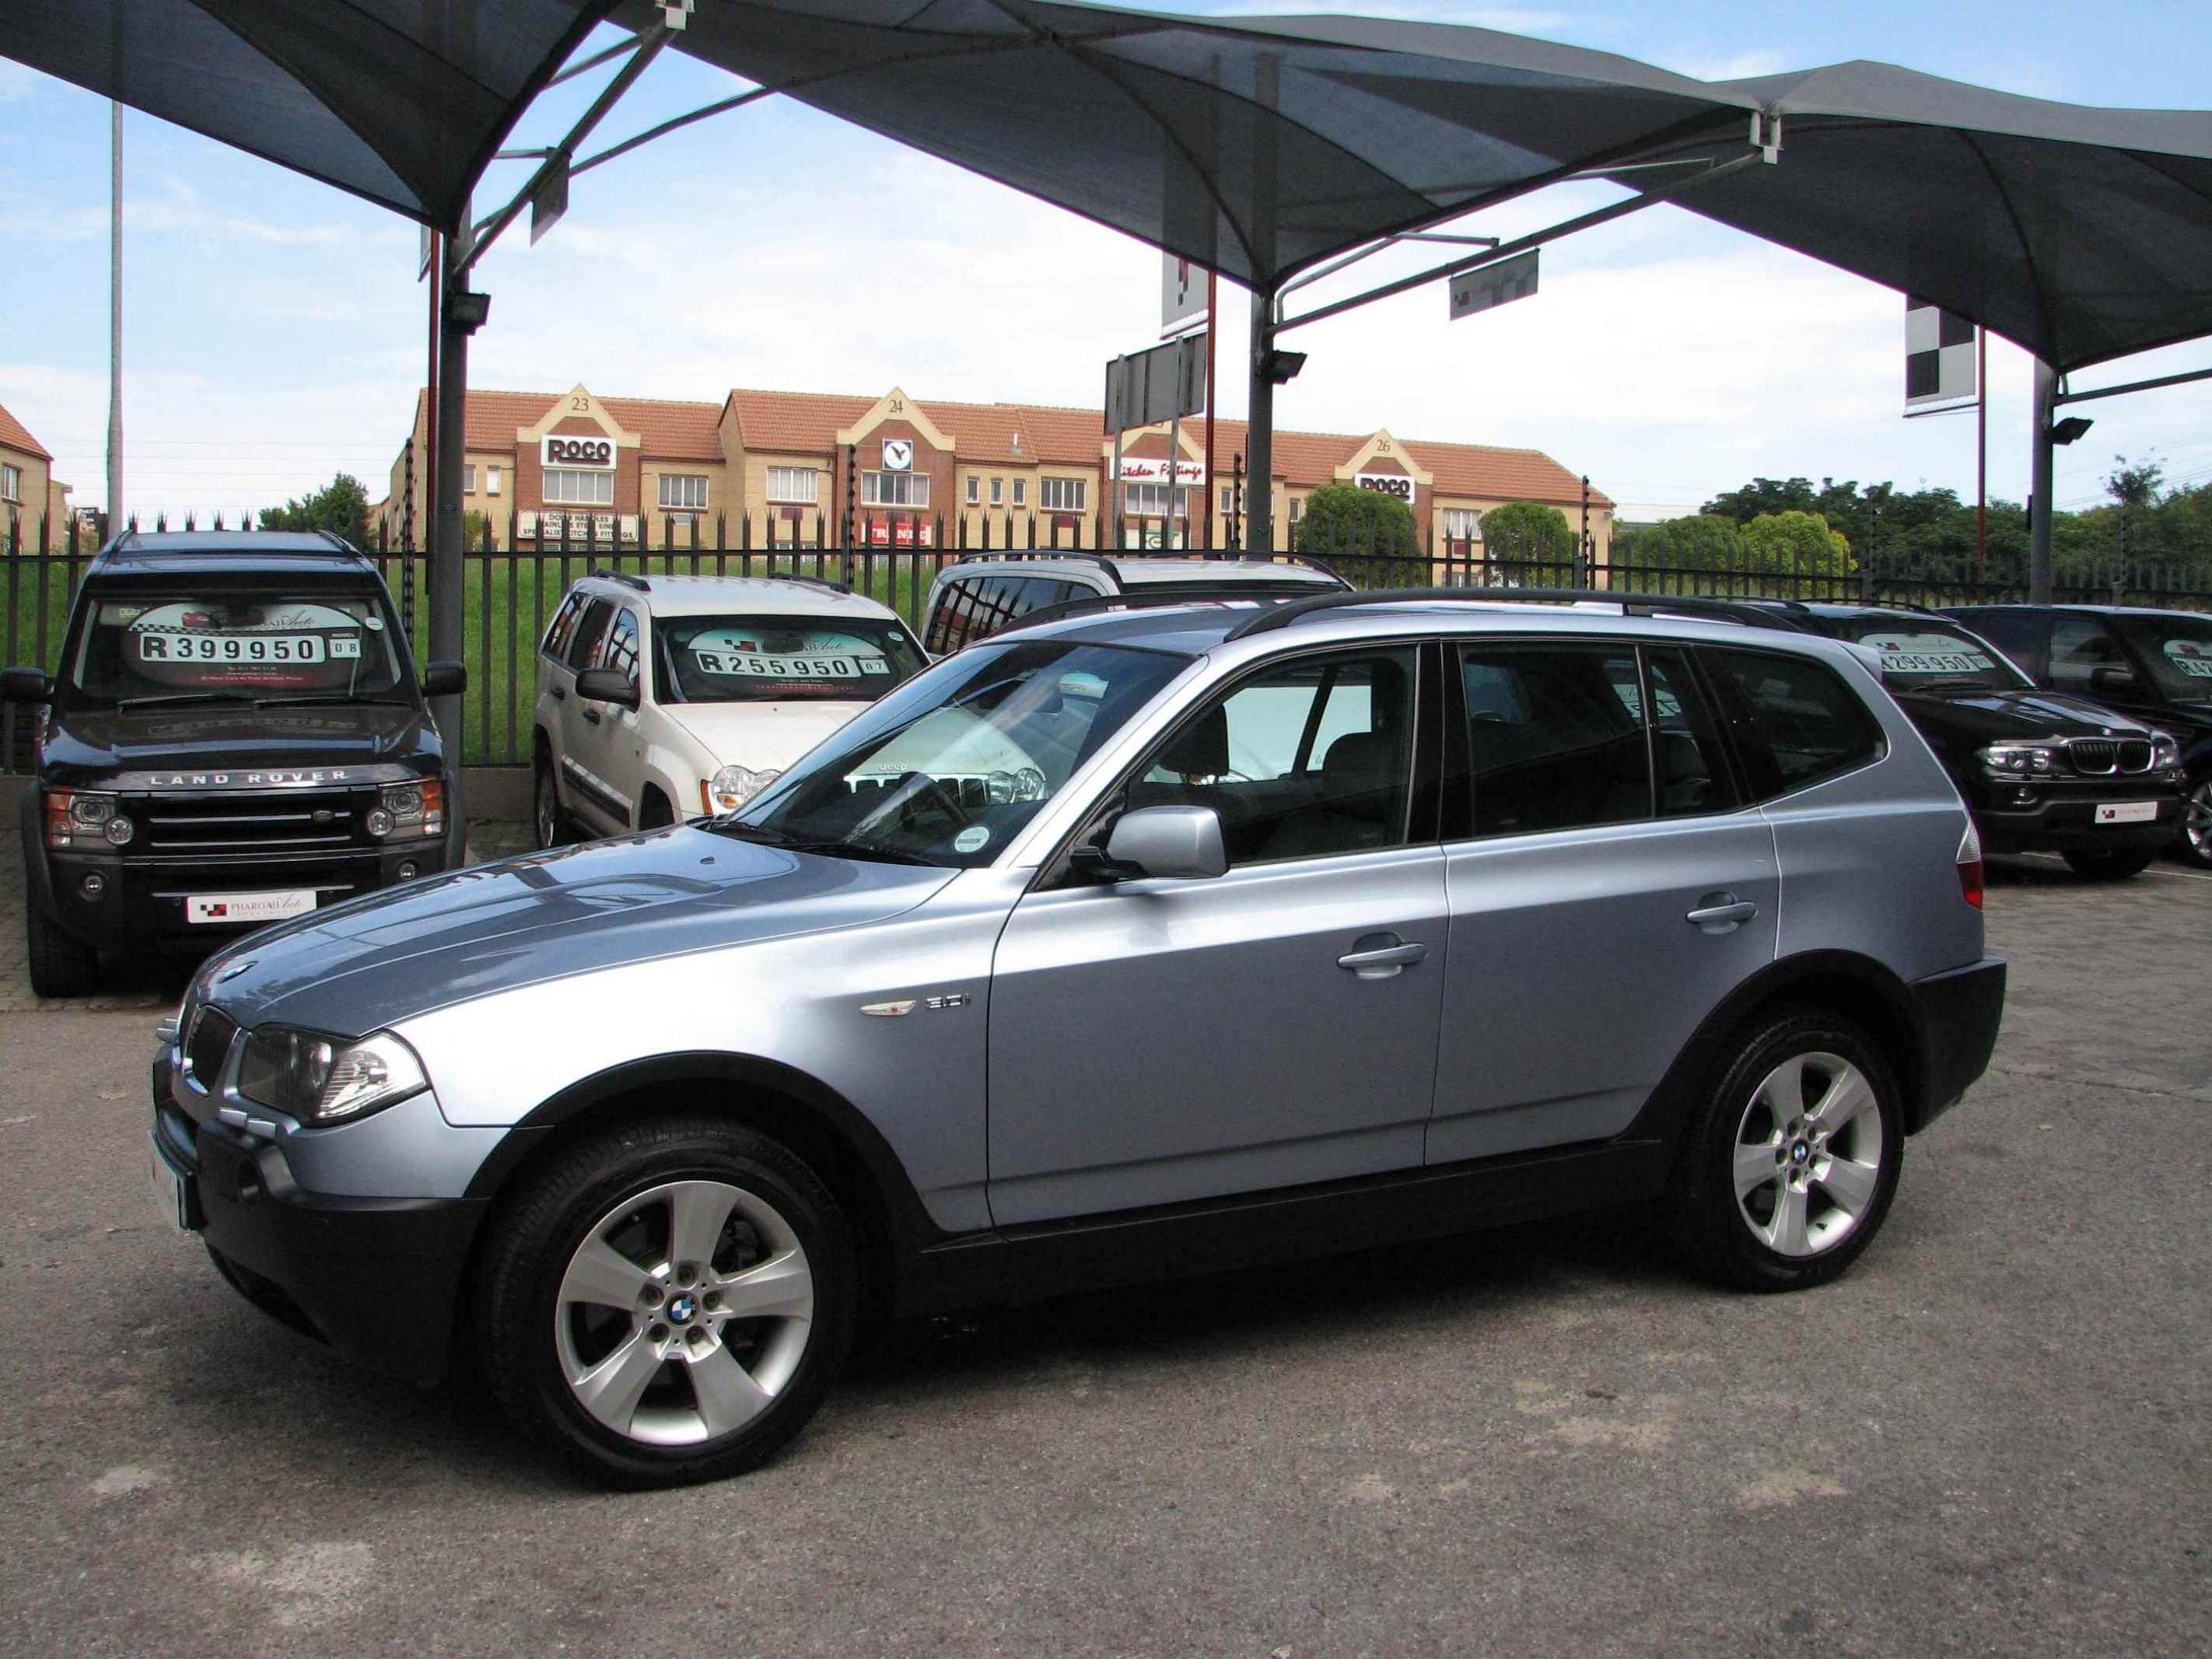 2004 bmw x3 information and photos momentcar. Black Bedroom Furniture Sets. Home Design Ideas